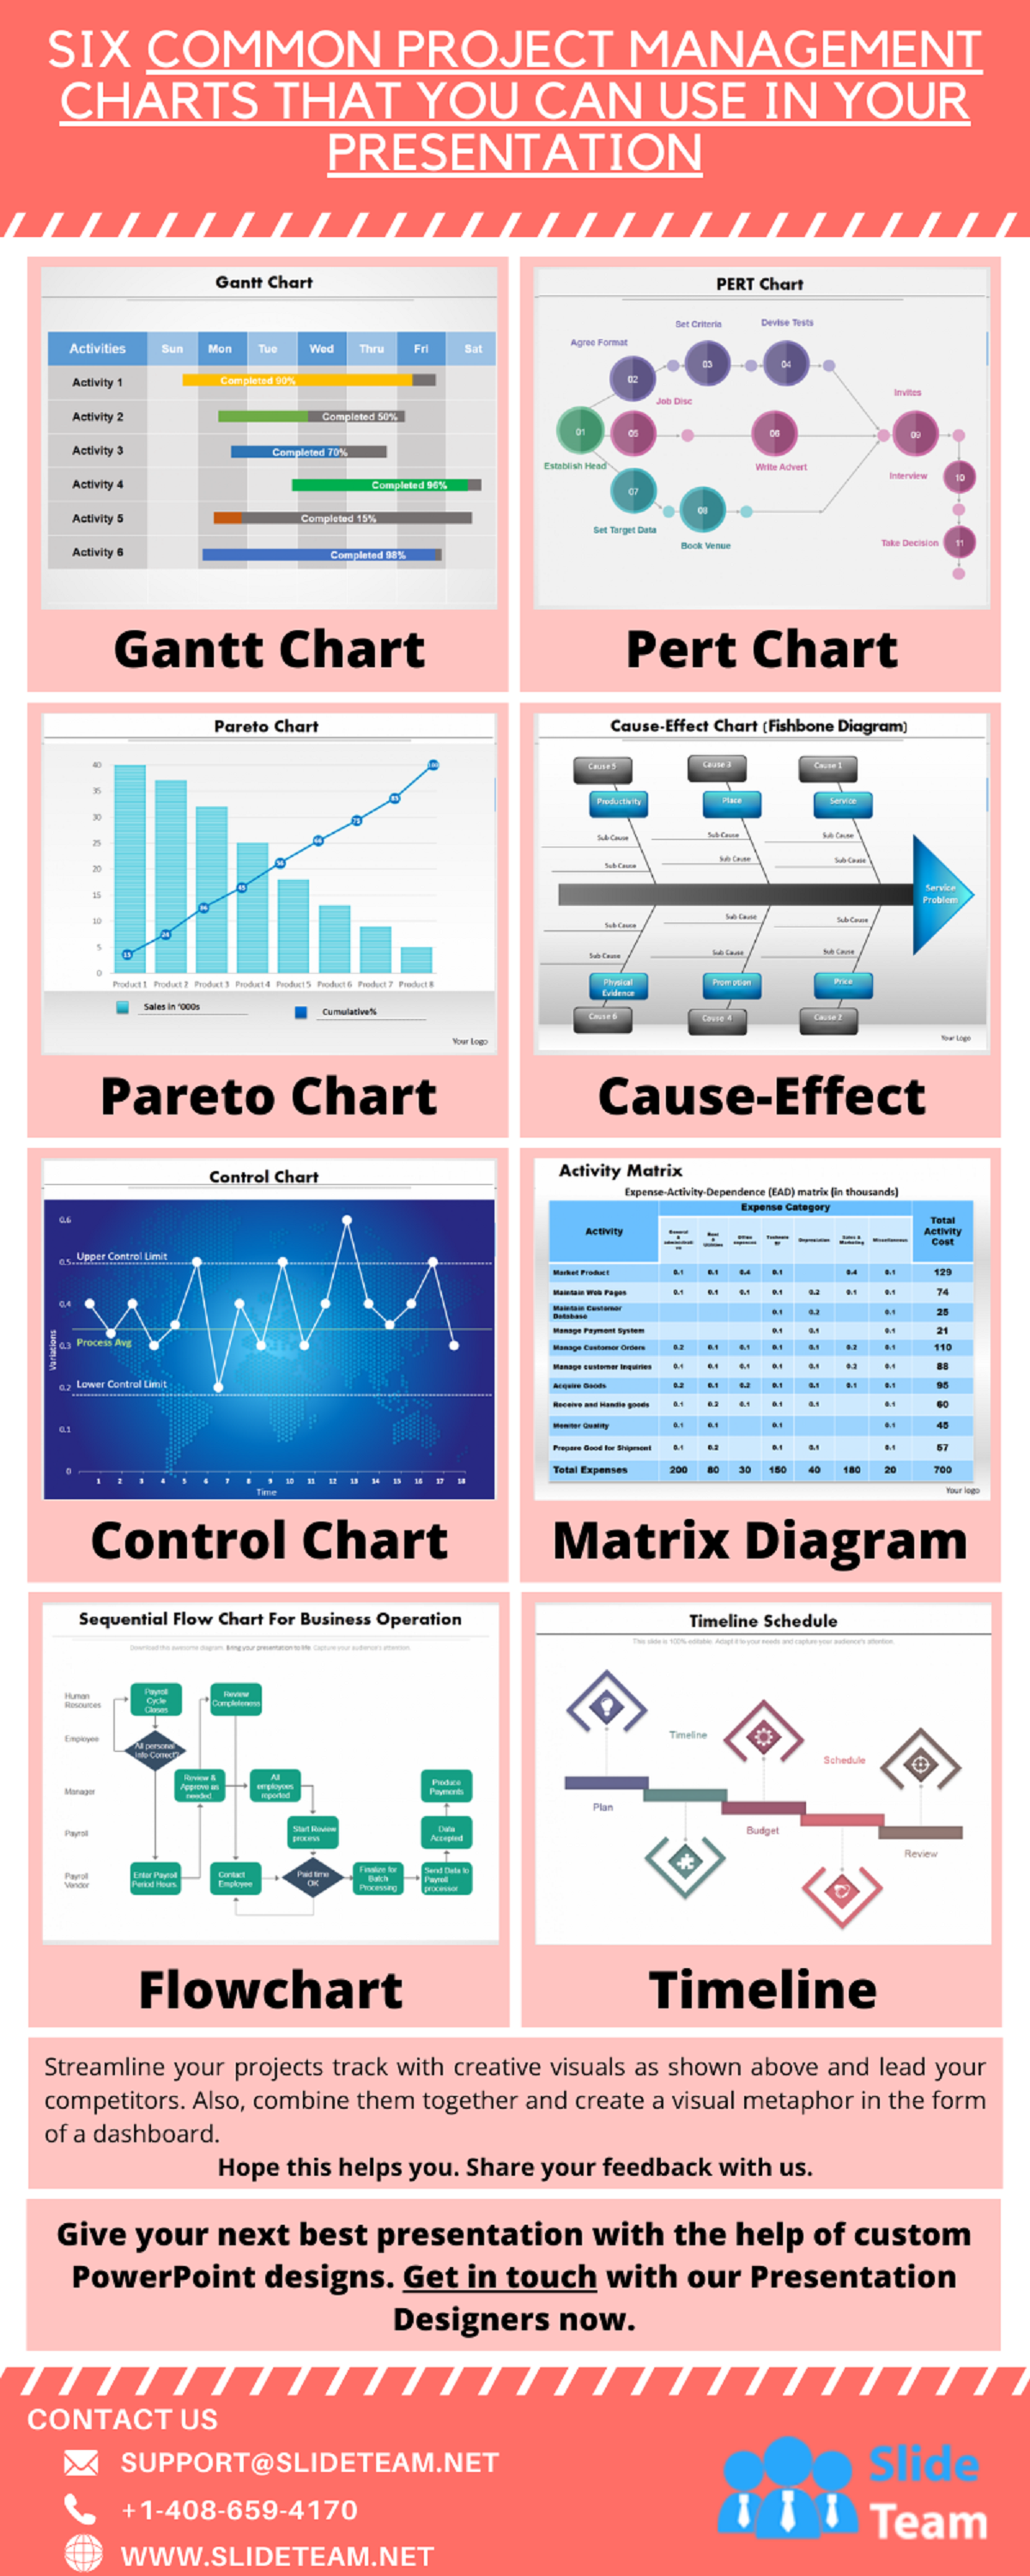 9-common-project-management-charts-that-you-can-use-in-your-presentation-infographic